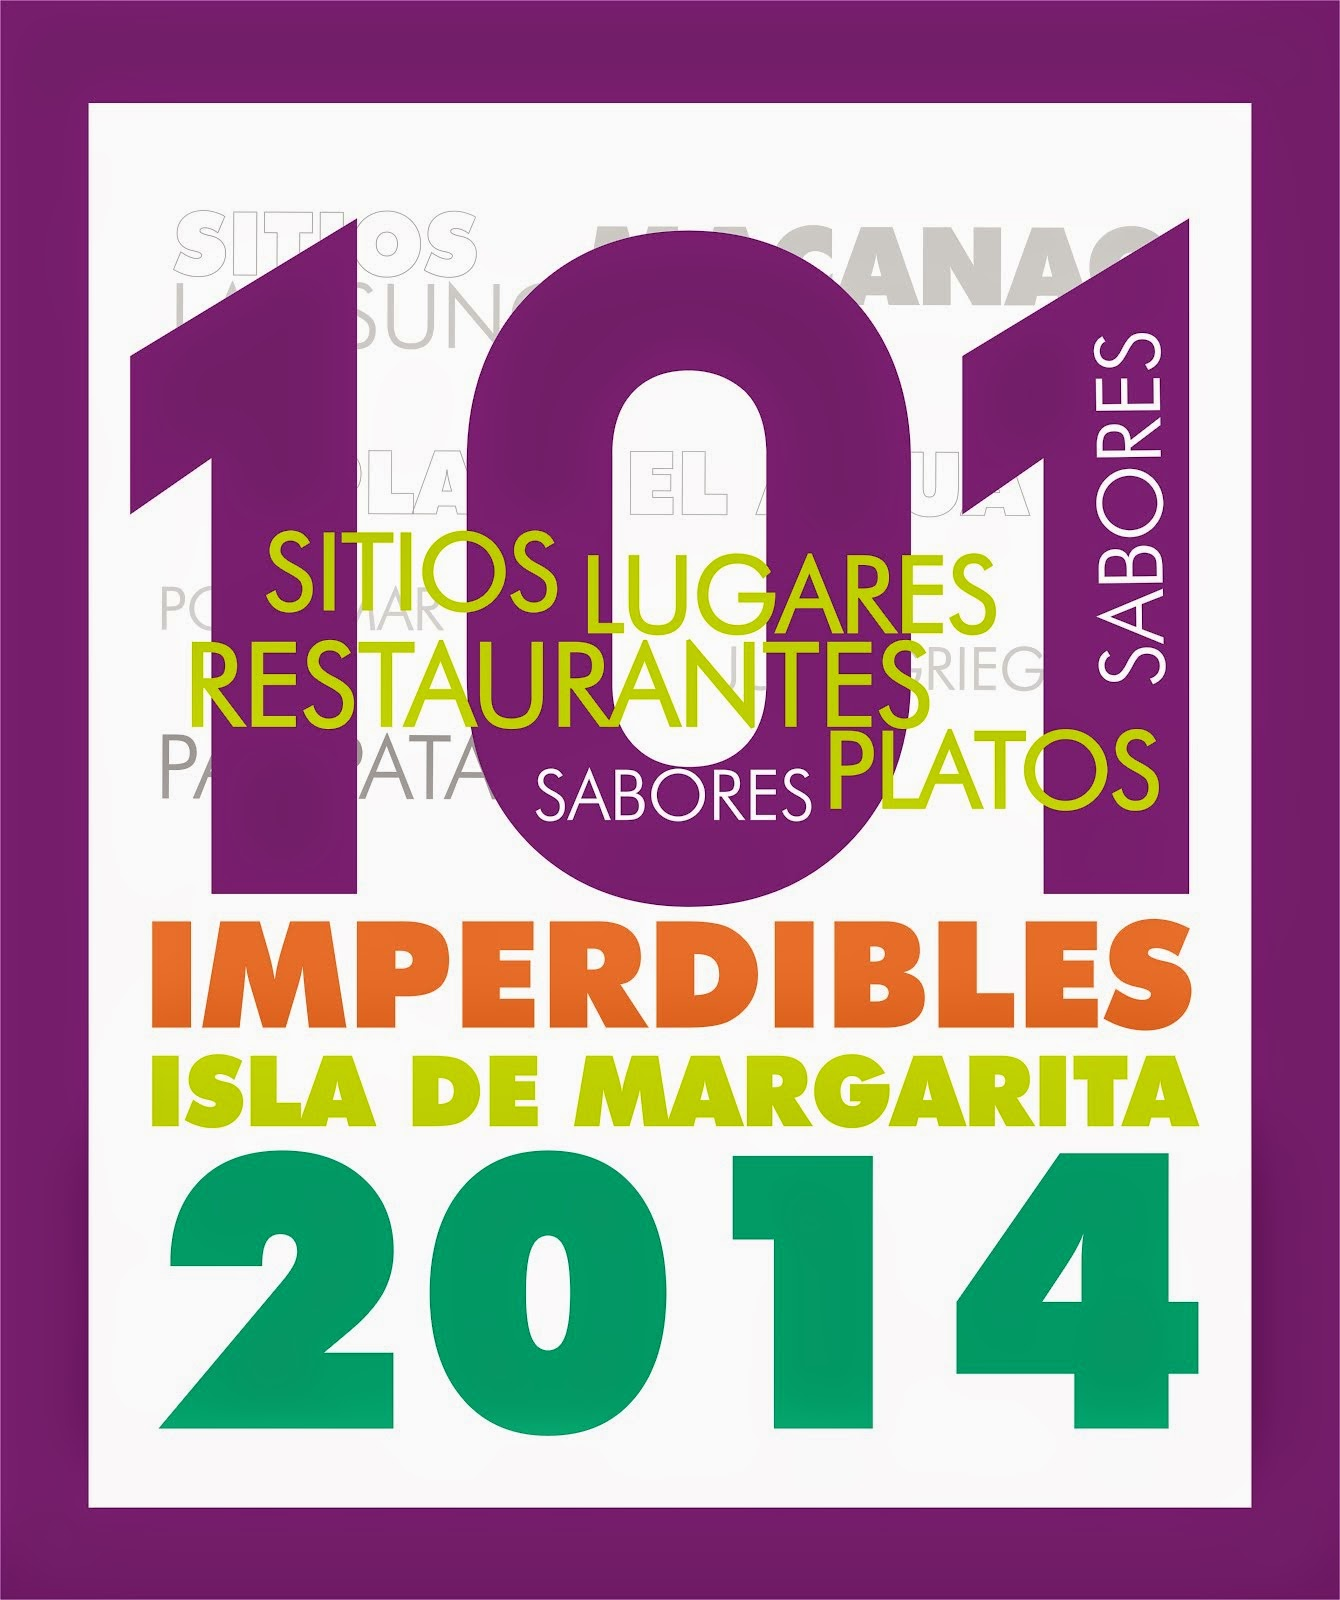 101 IMPERDIBLES DE MARGARITA 2014